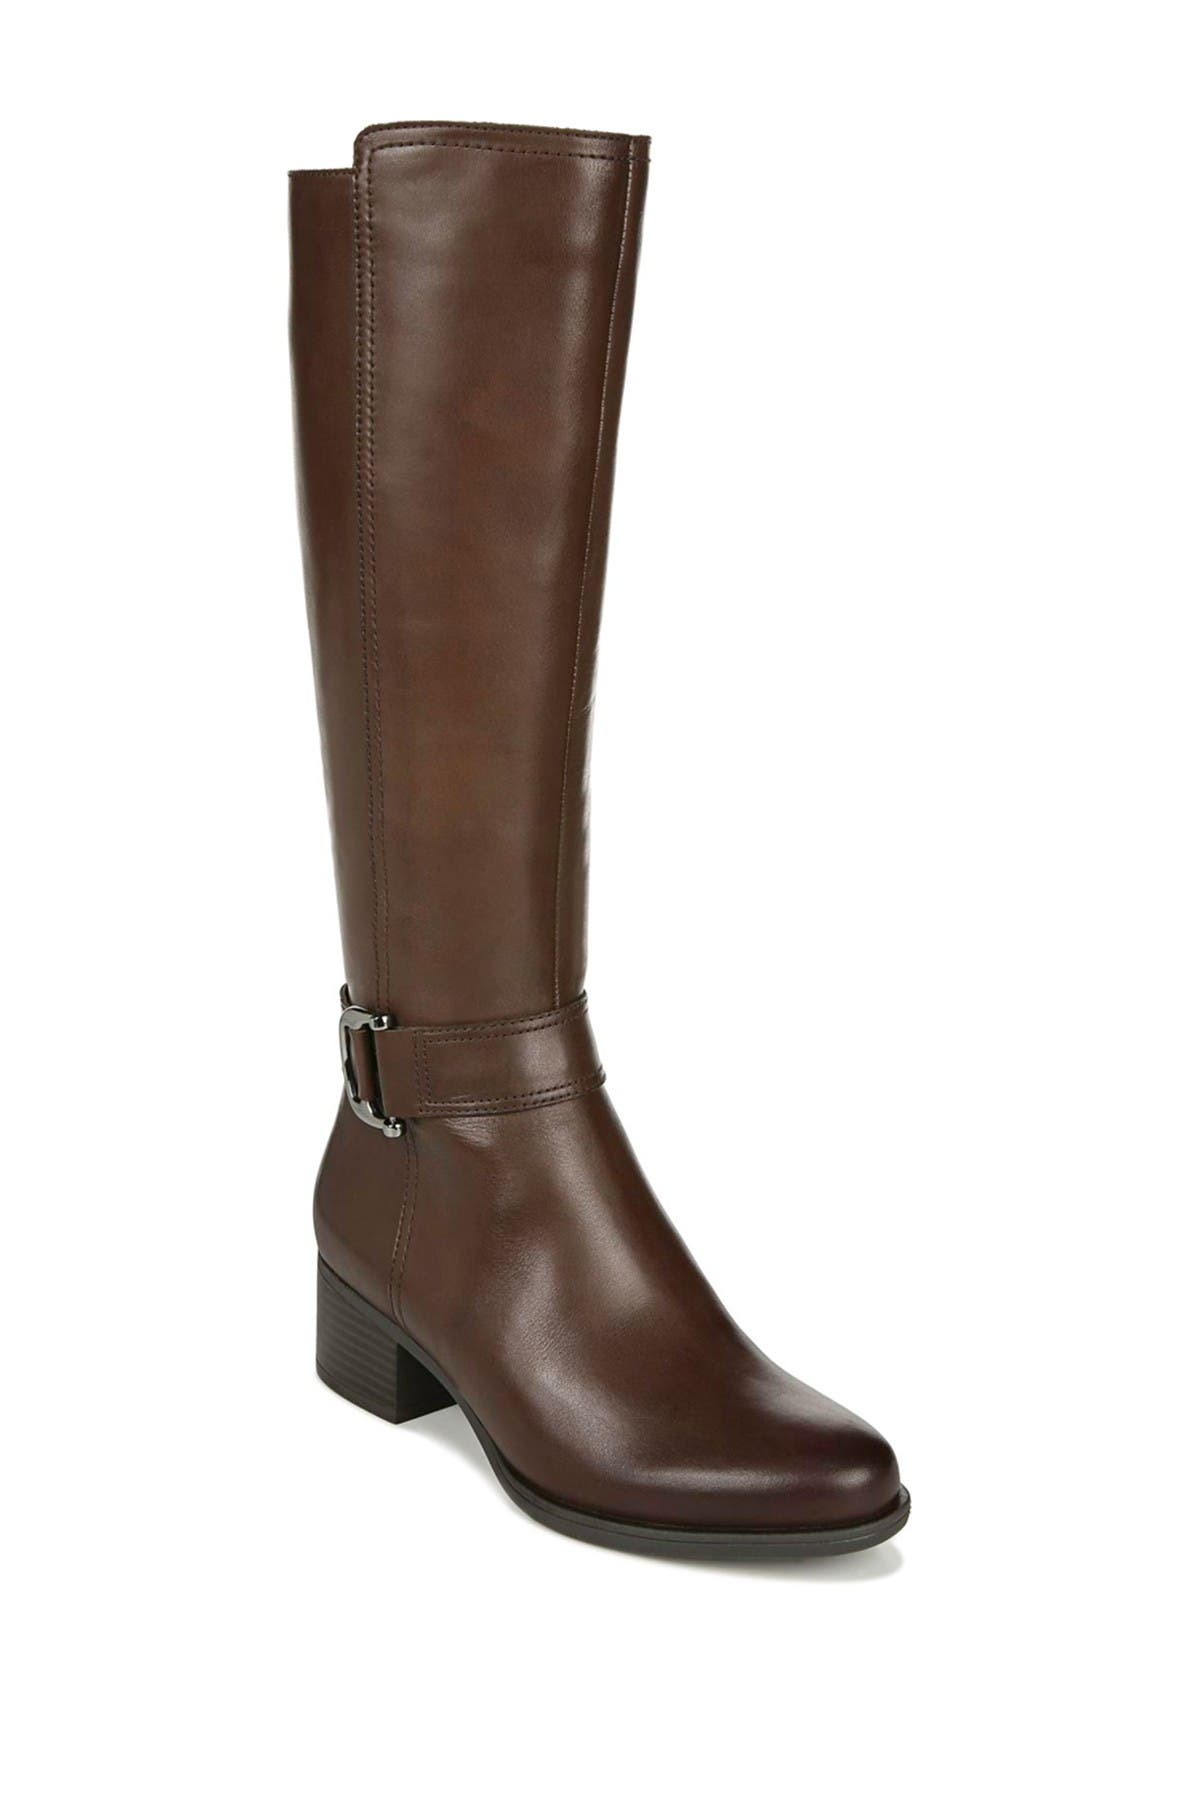 Naturalizer   Kelso Leather Boot - Wide